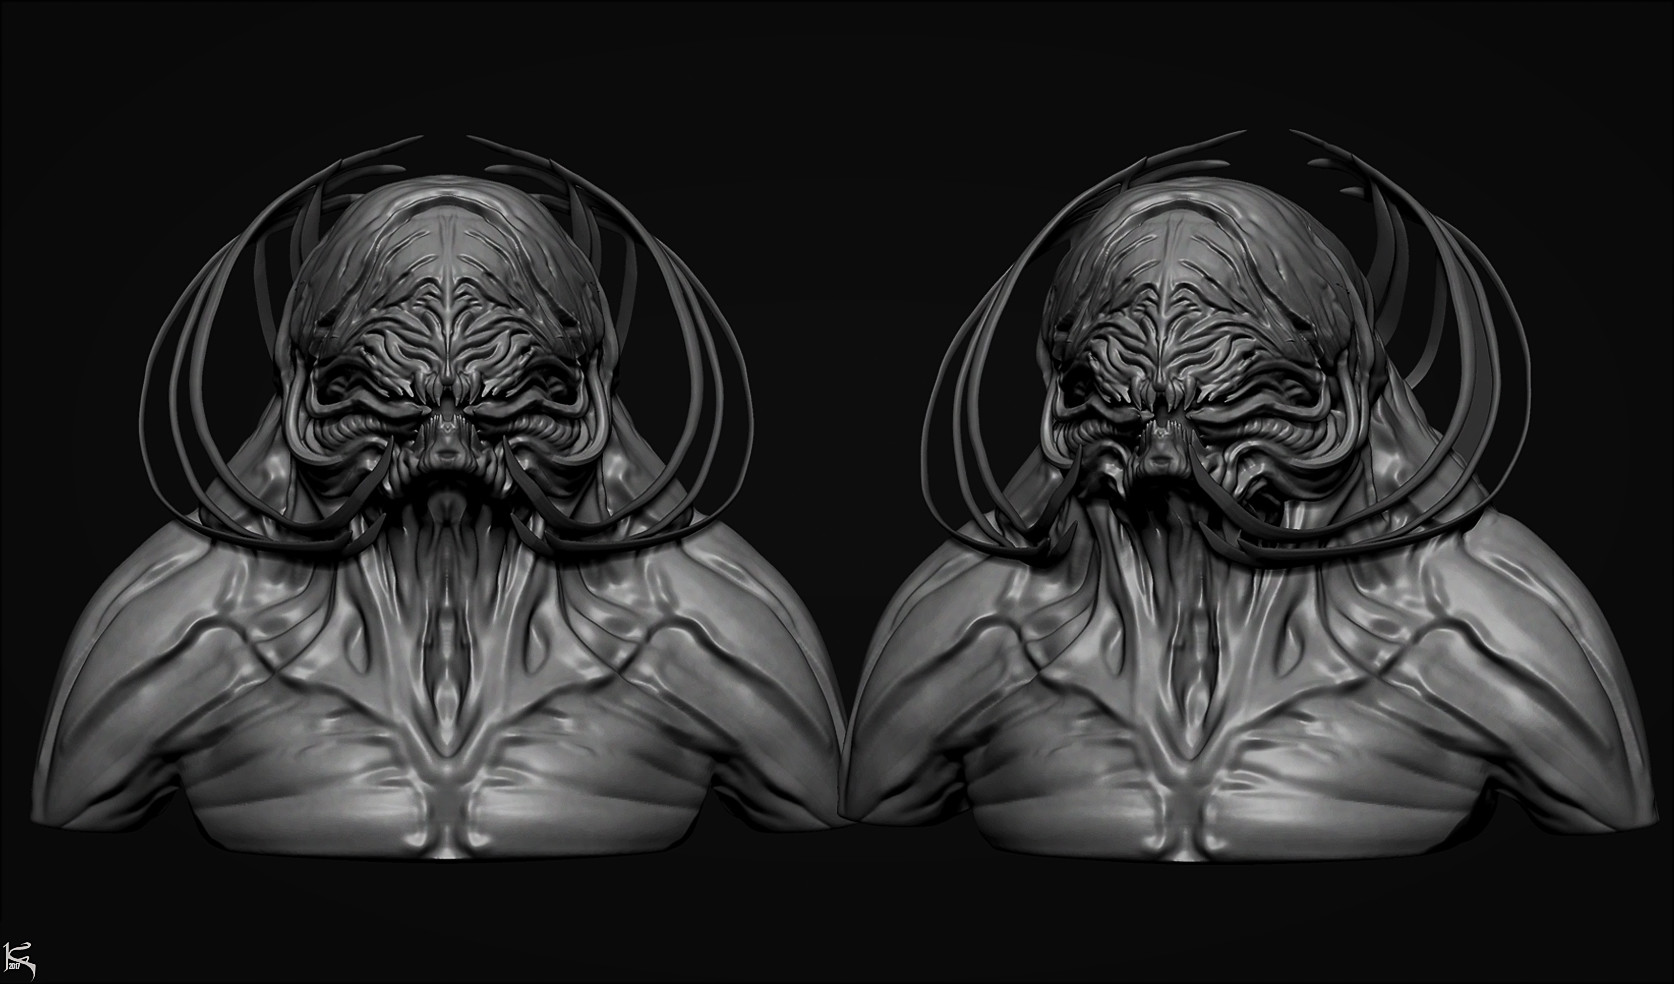 kenny-carmody-creature35-zbrush-screengrab02.jpg